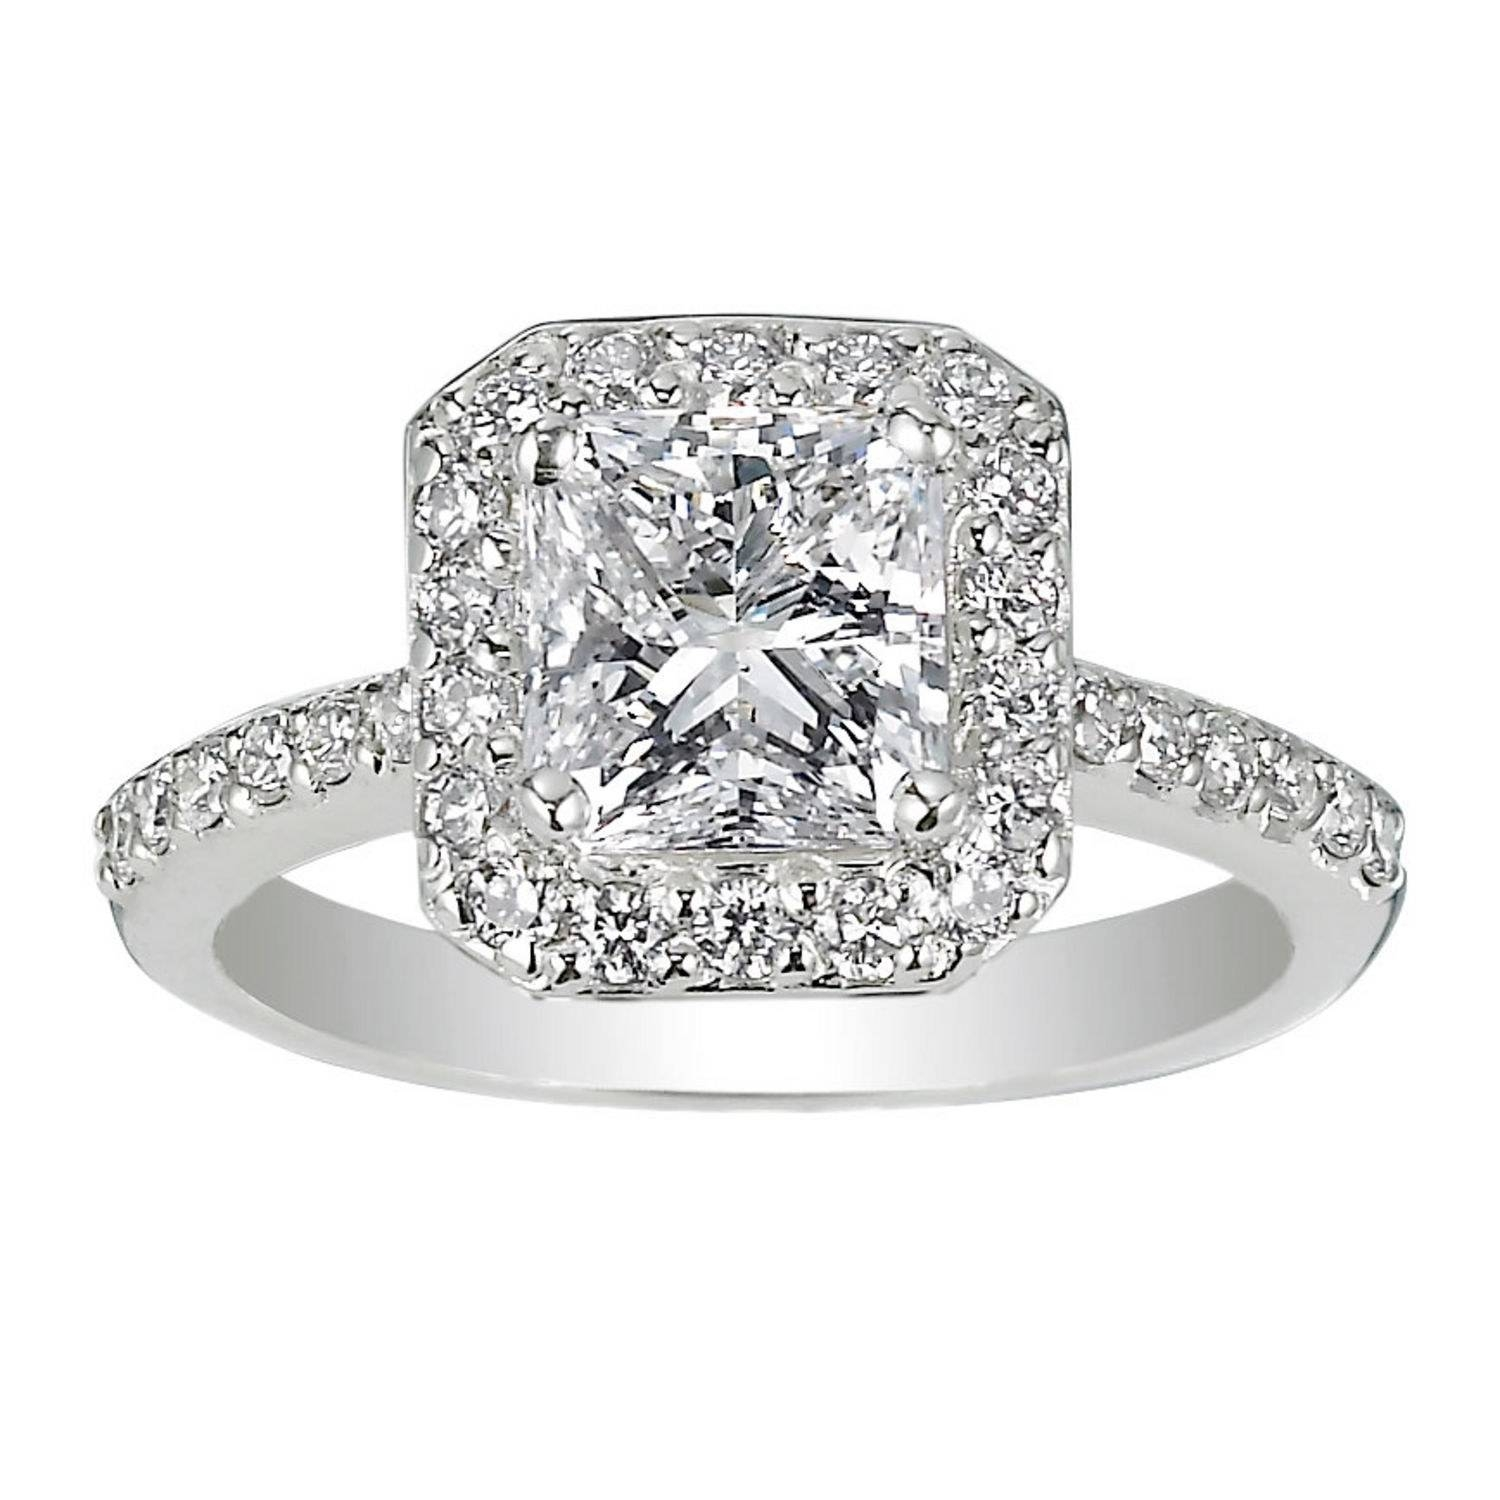 62 Diamond Engagement Rings Under $5,000 | Glamour Regarding Diamonds Wedding Rings (View 2 of 15)